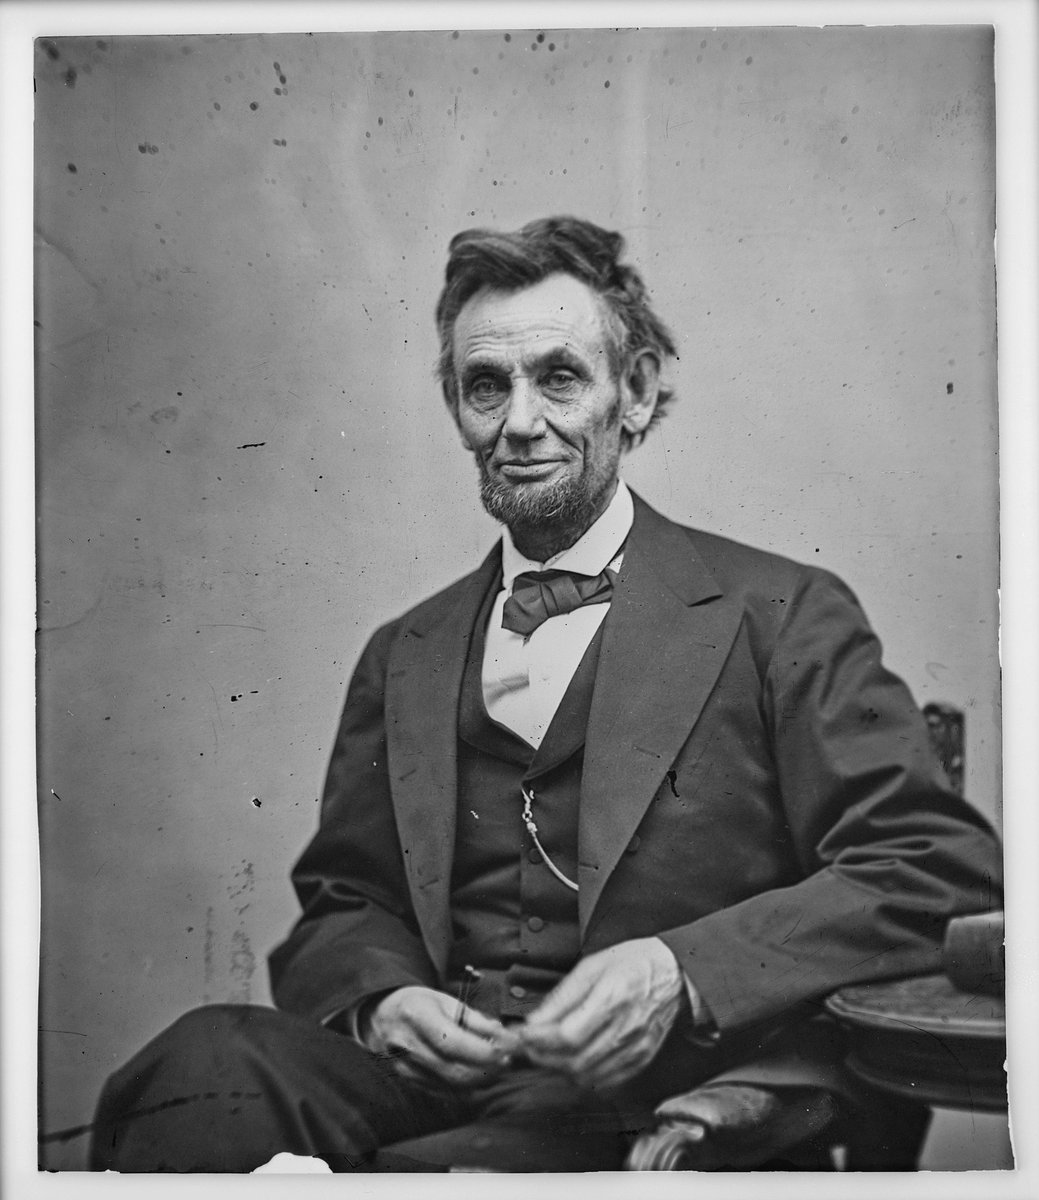 Today is #PresidentsDay. Which U.S. President do you most admire? Abraham #Lincoln's courage in fighting injustice and his commitment to reconciling a nation torn apart by civil war still inspire us to form a more perfect union. #constitution